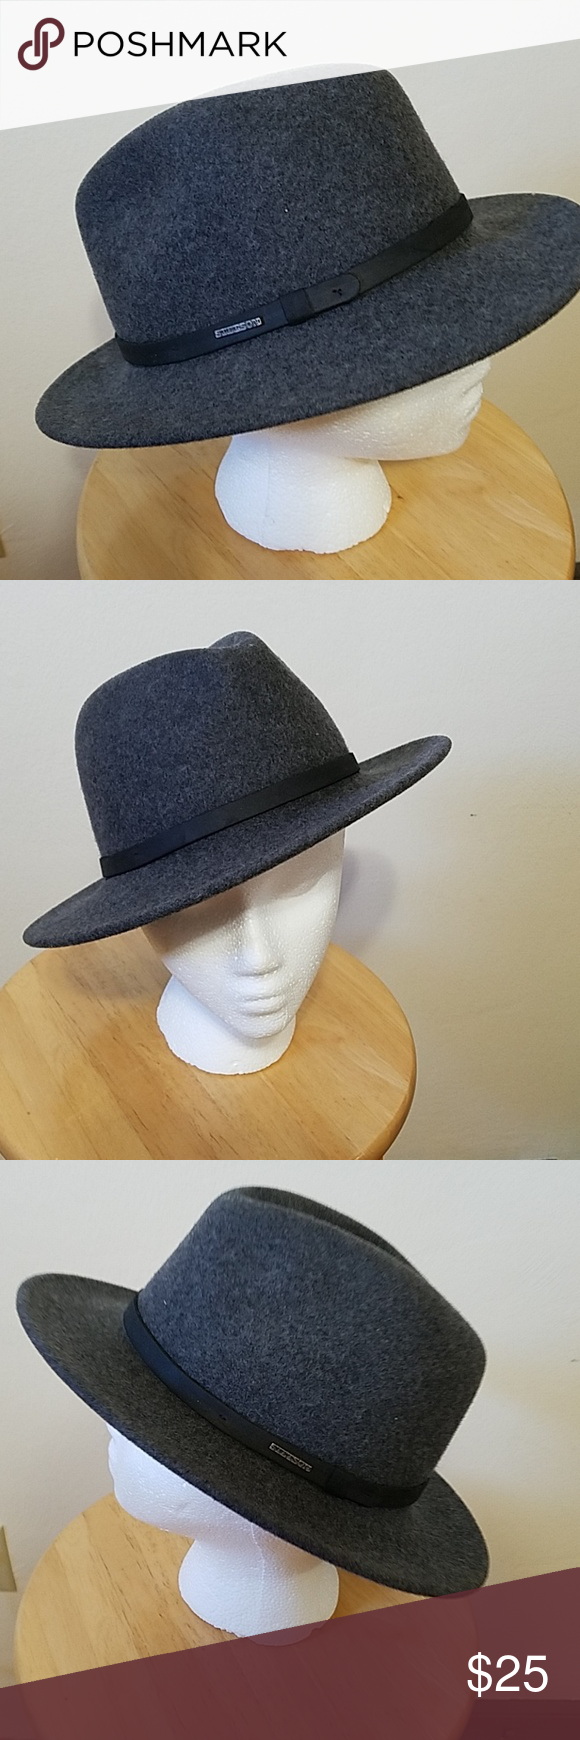 8a2e8d35082ec STETSON Crushable Explorer Great hat molds to your preferences. In  excellent condition. Size Large. Stetson Accessories Hats